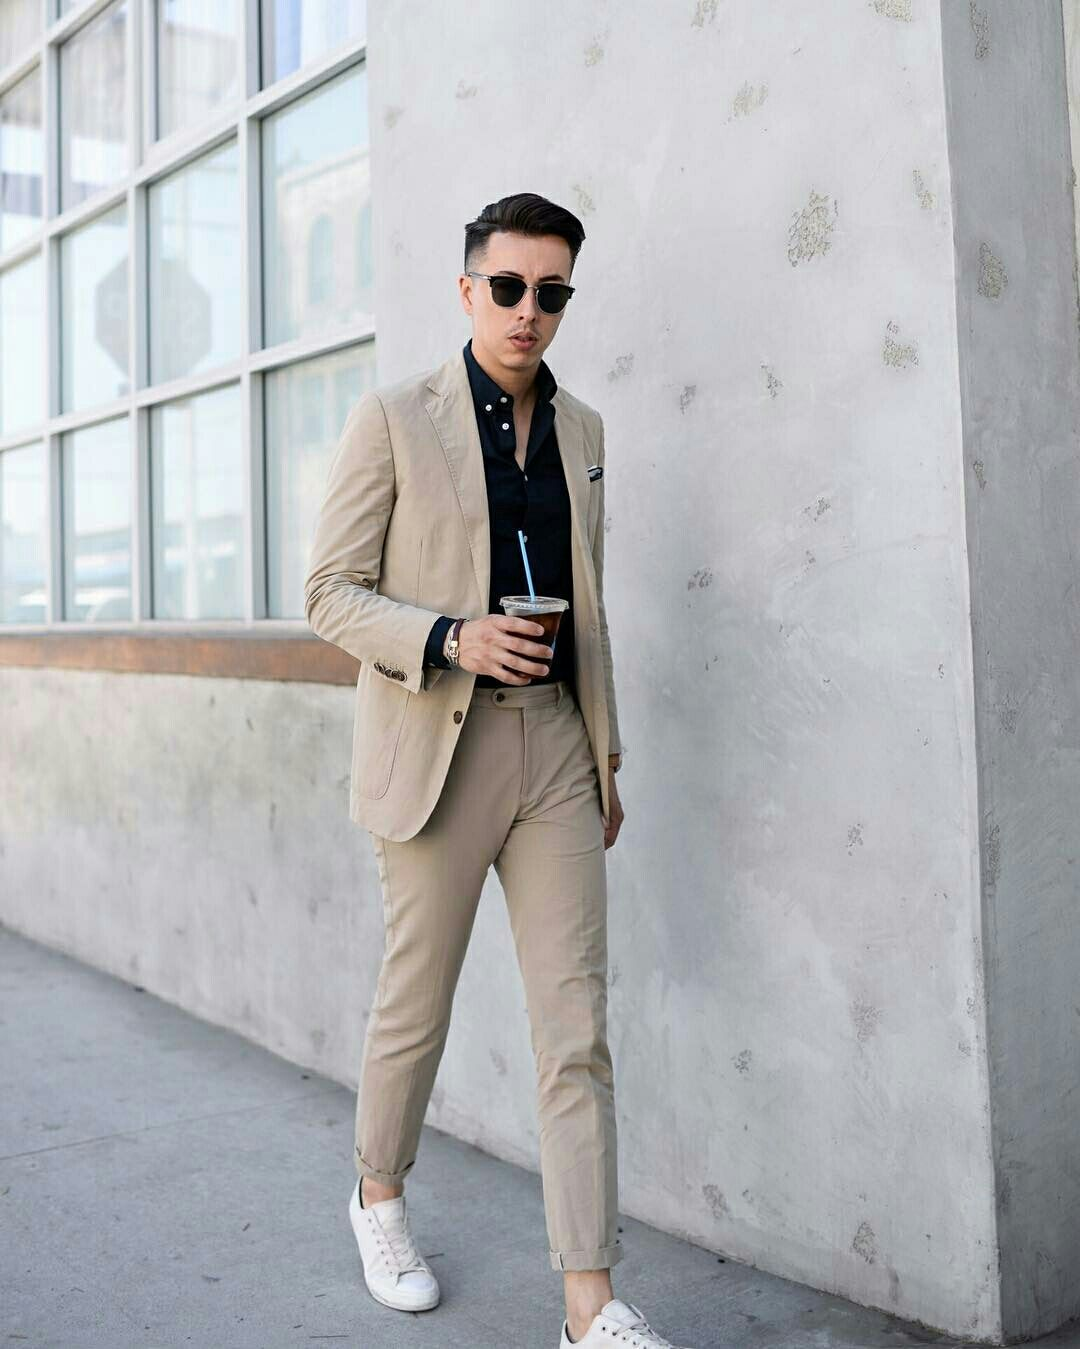 Sharp Street Style Outfit Ideas.